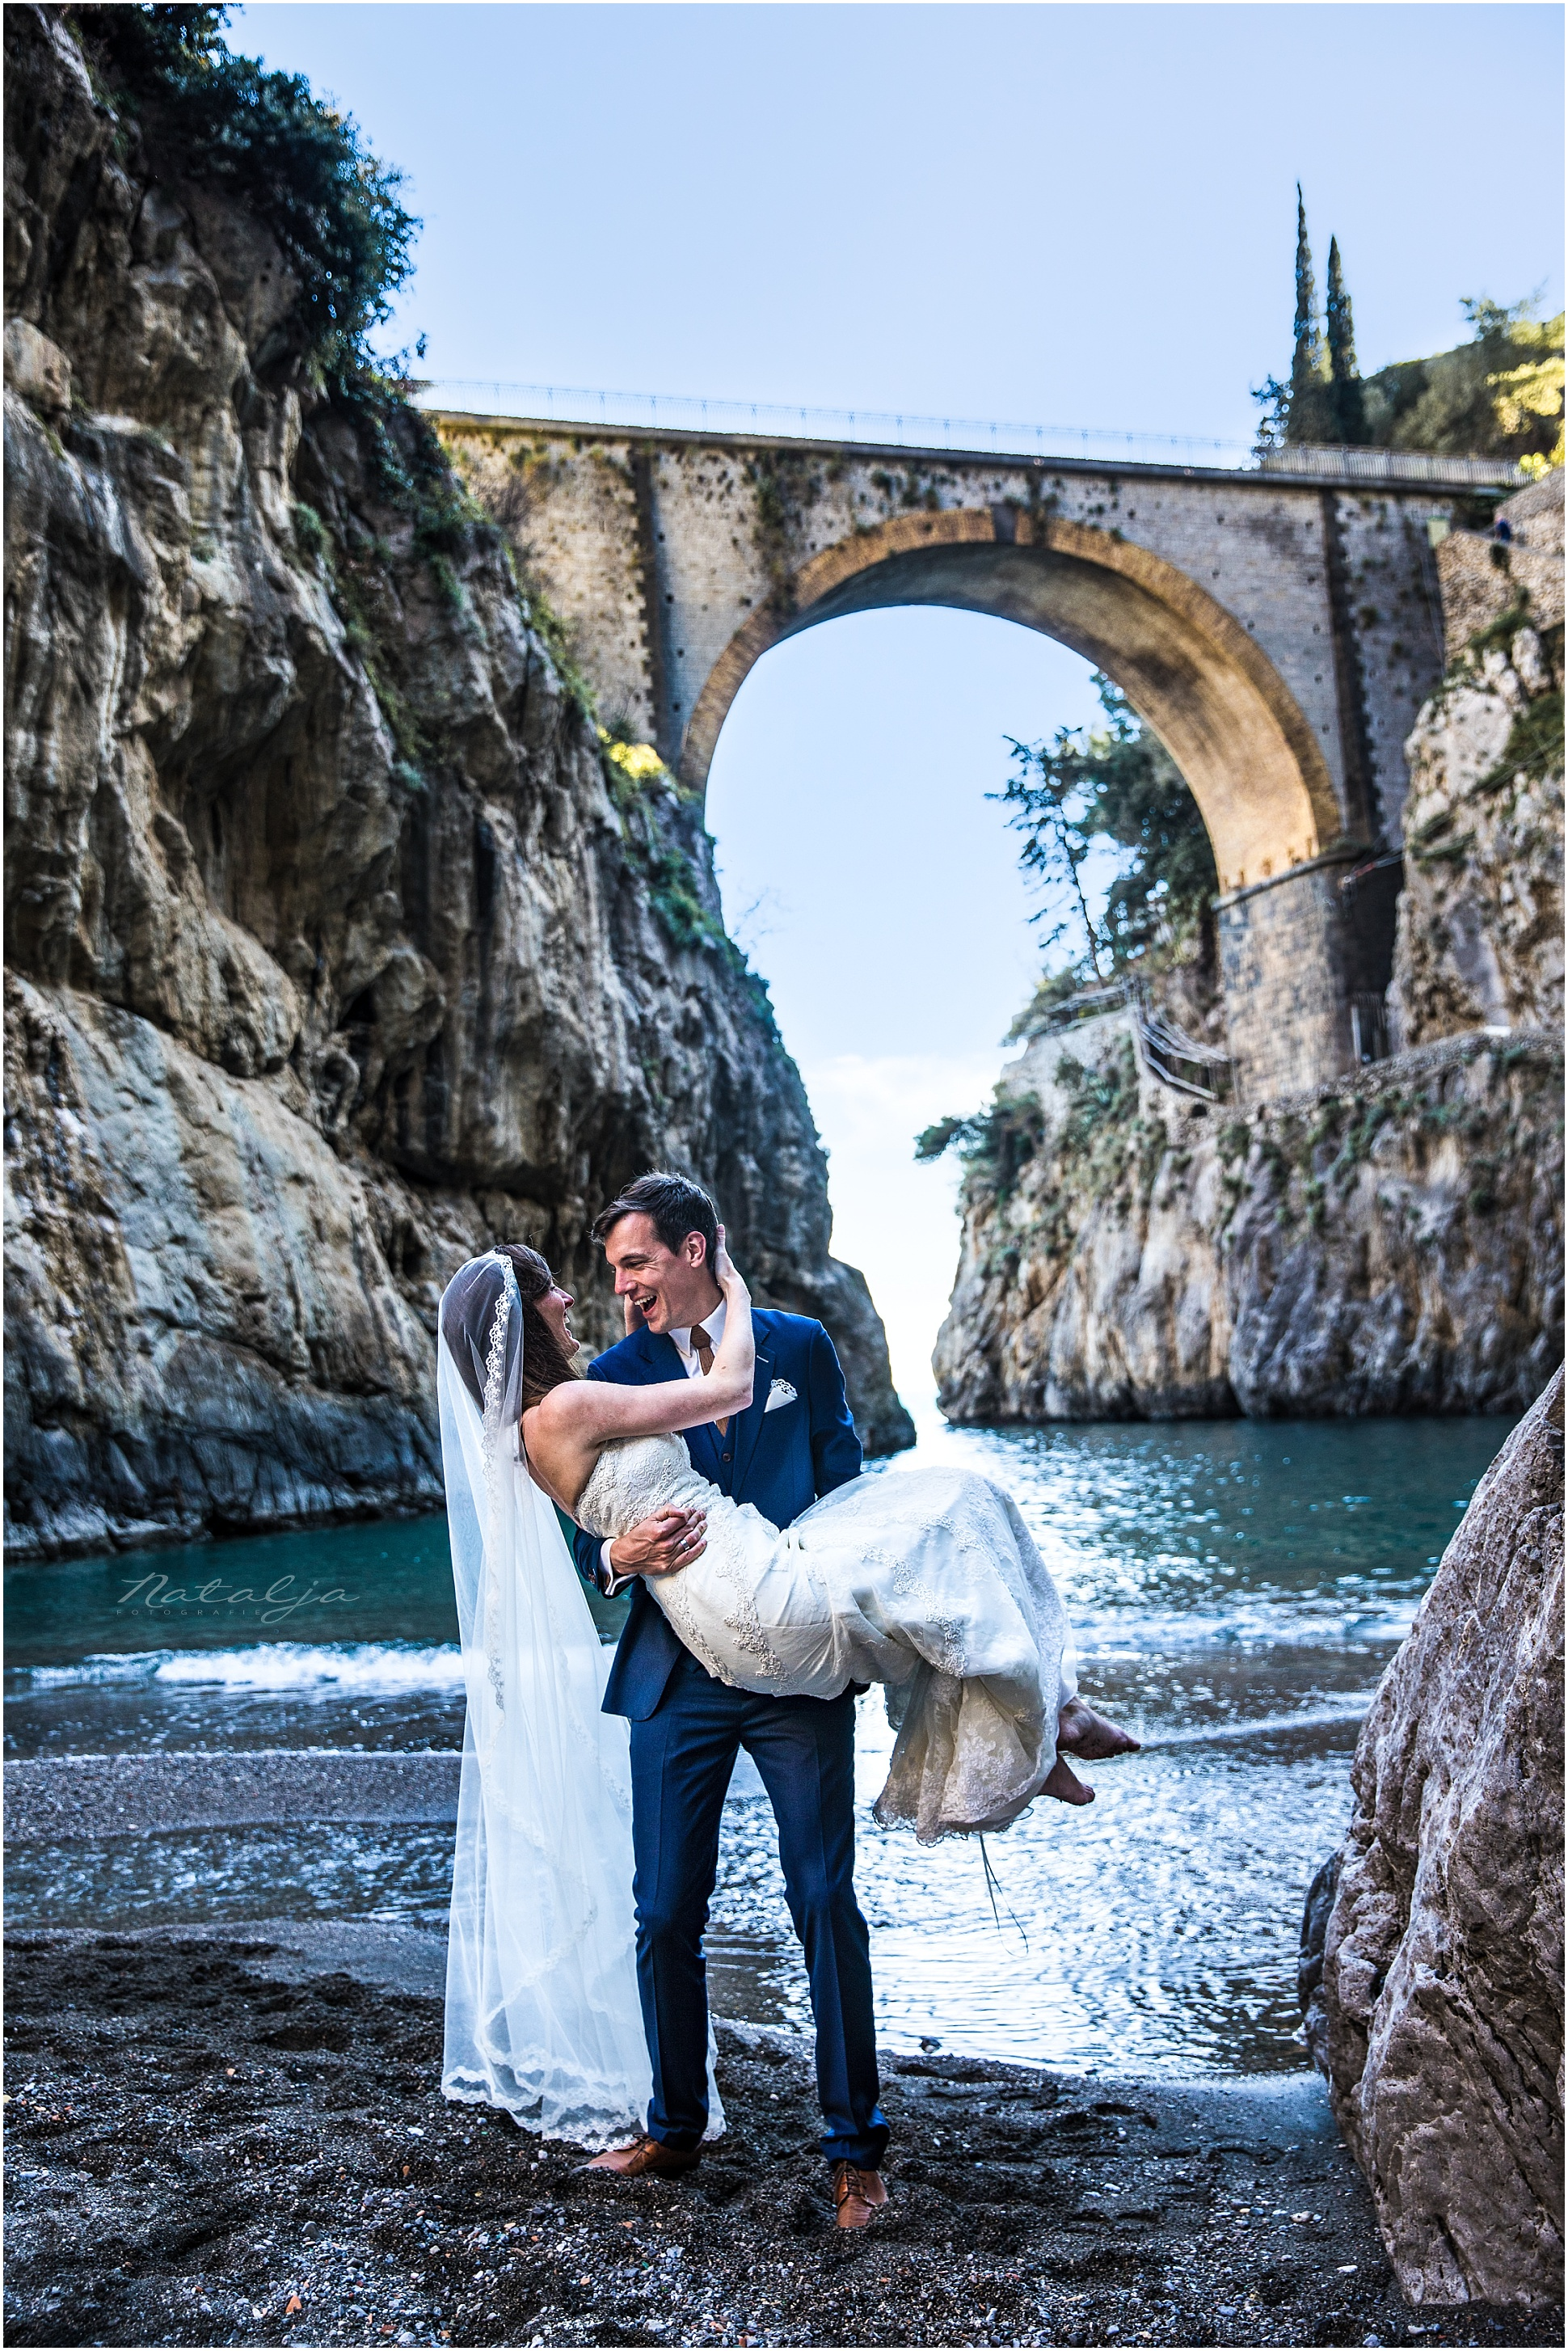 Weddingphotography Amalfi Ravello Scala Italy